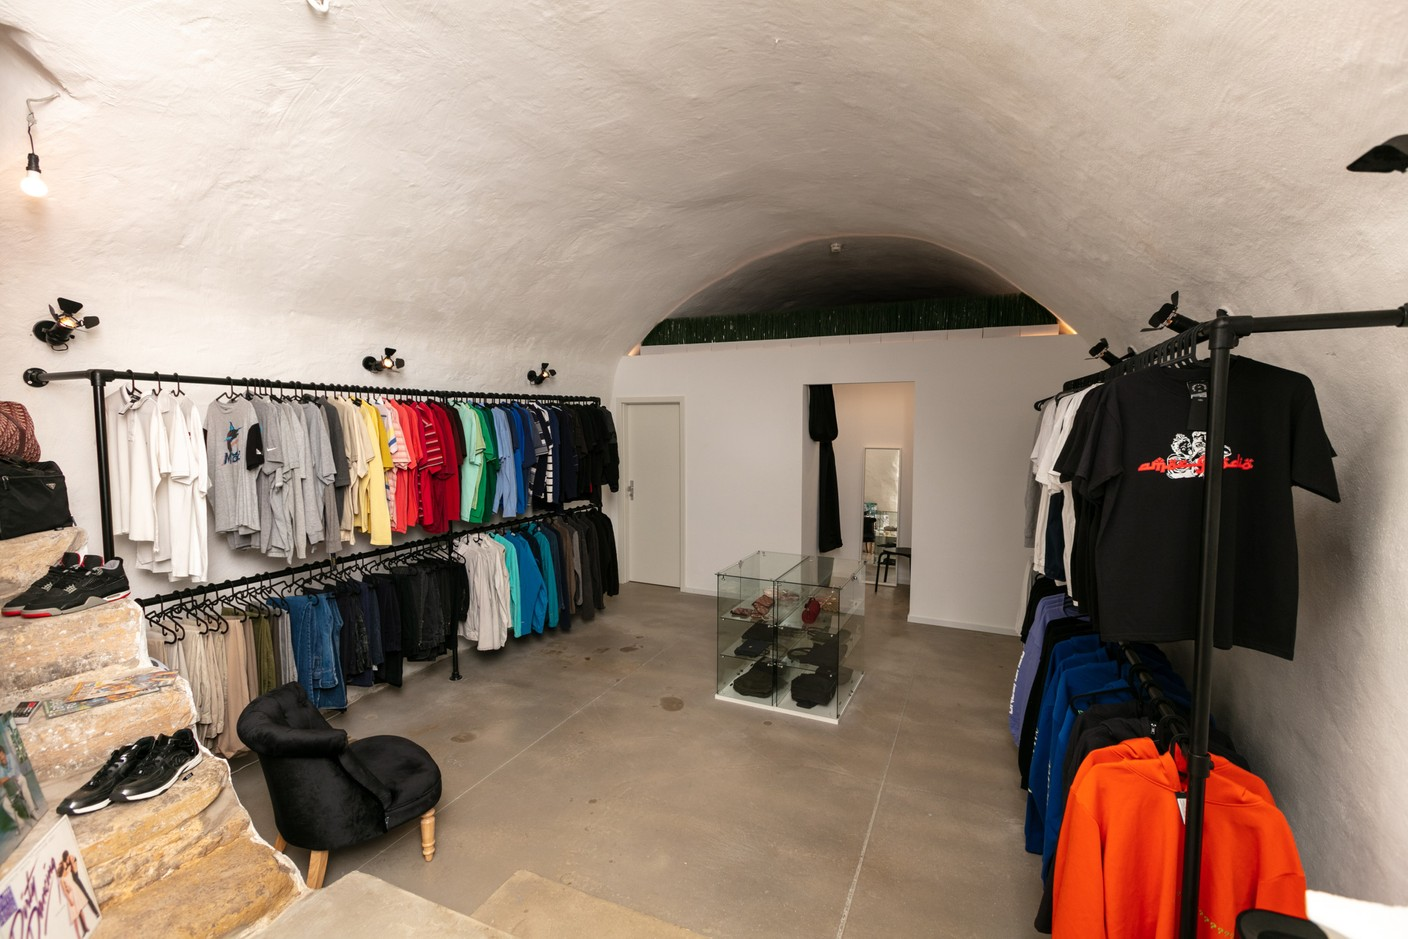 The basement of The Source hides vintage clothes selected by its co-owners. (Photo: Romain Gamba / Maison Moderne)